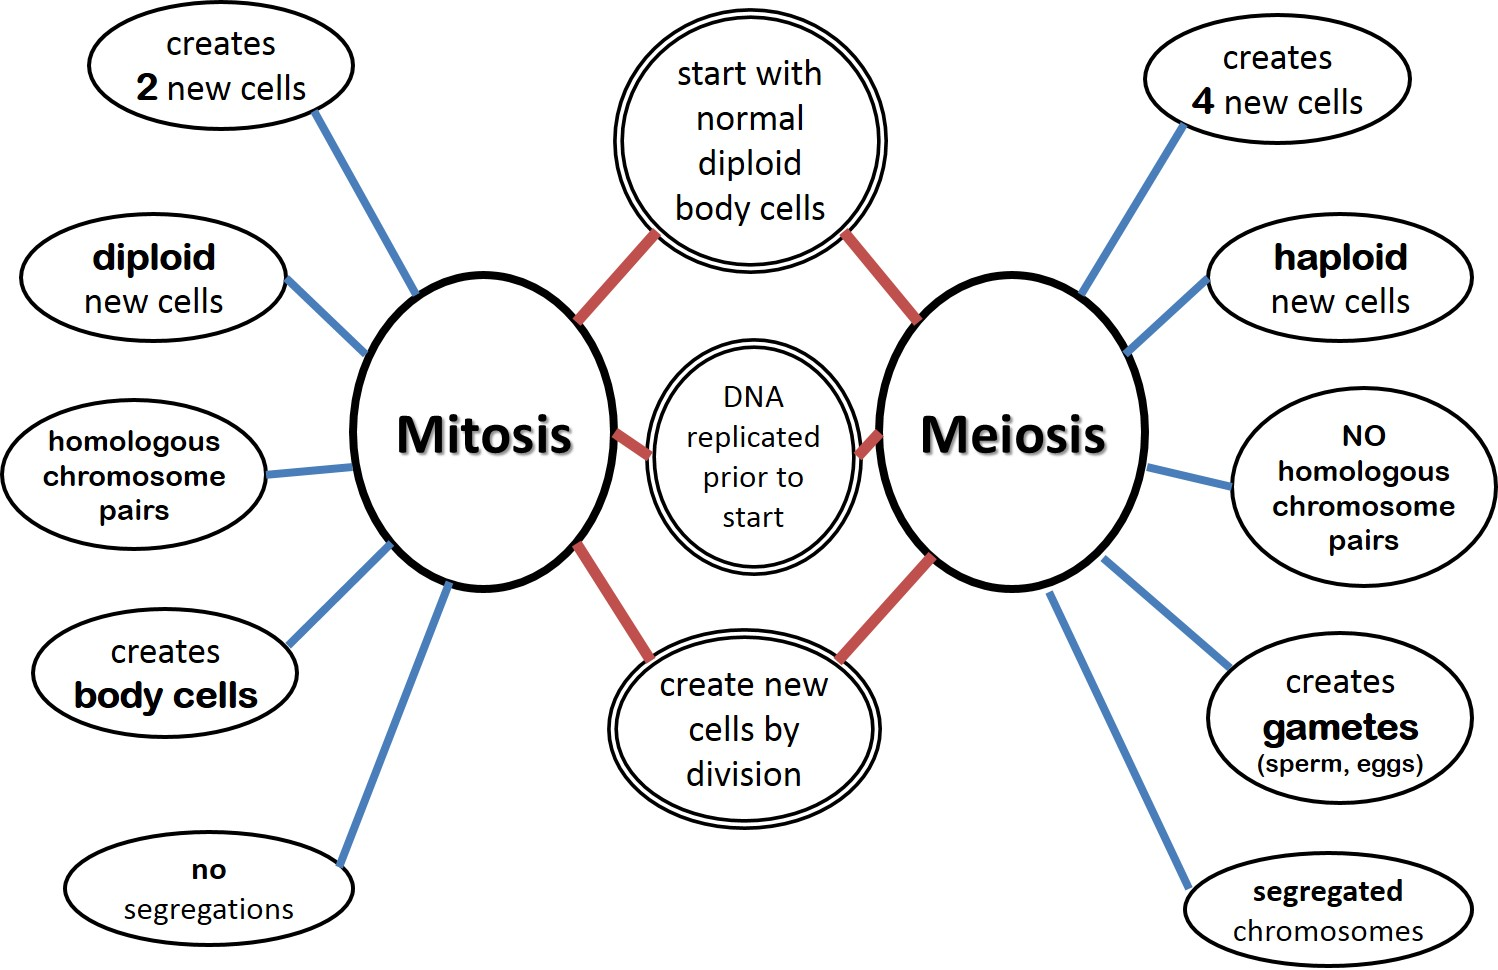 escience lab 11 mitosis Essays - largest database of quality sample essays and research papers on escience lab 11 mitosis.